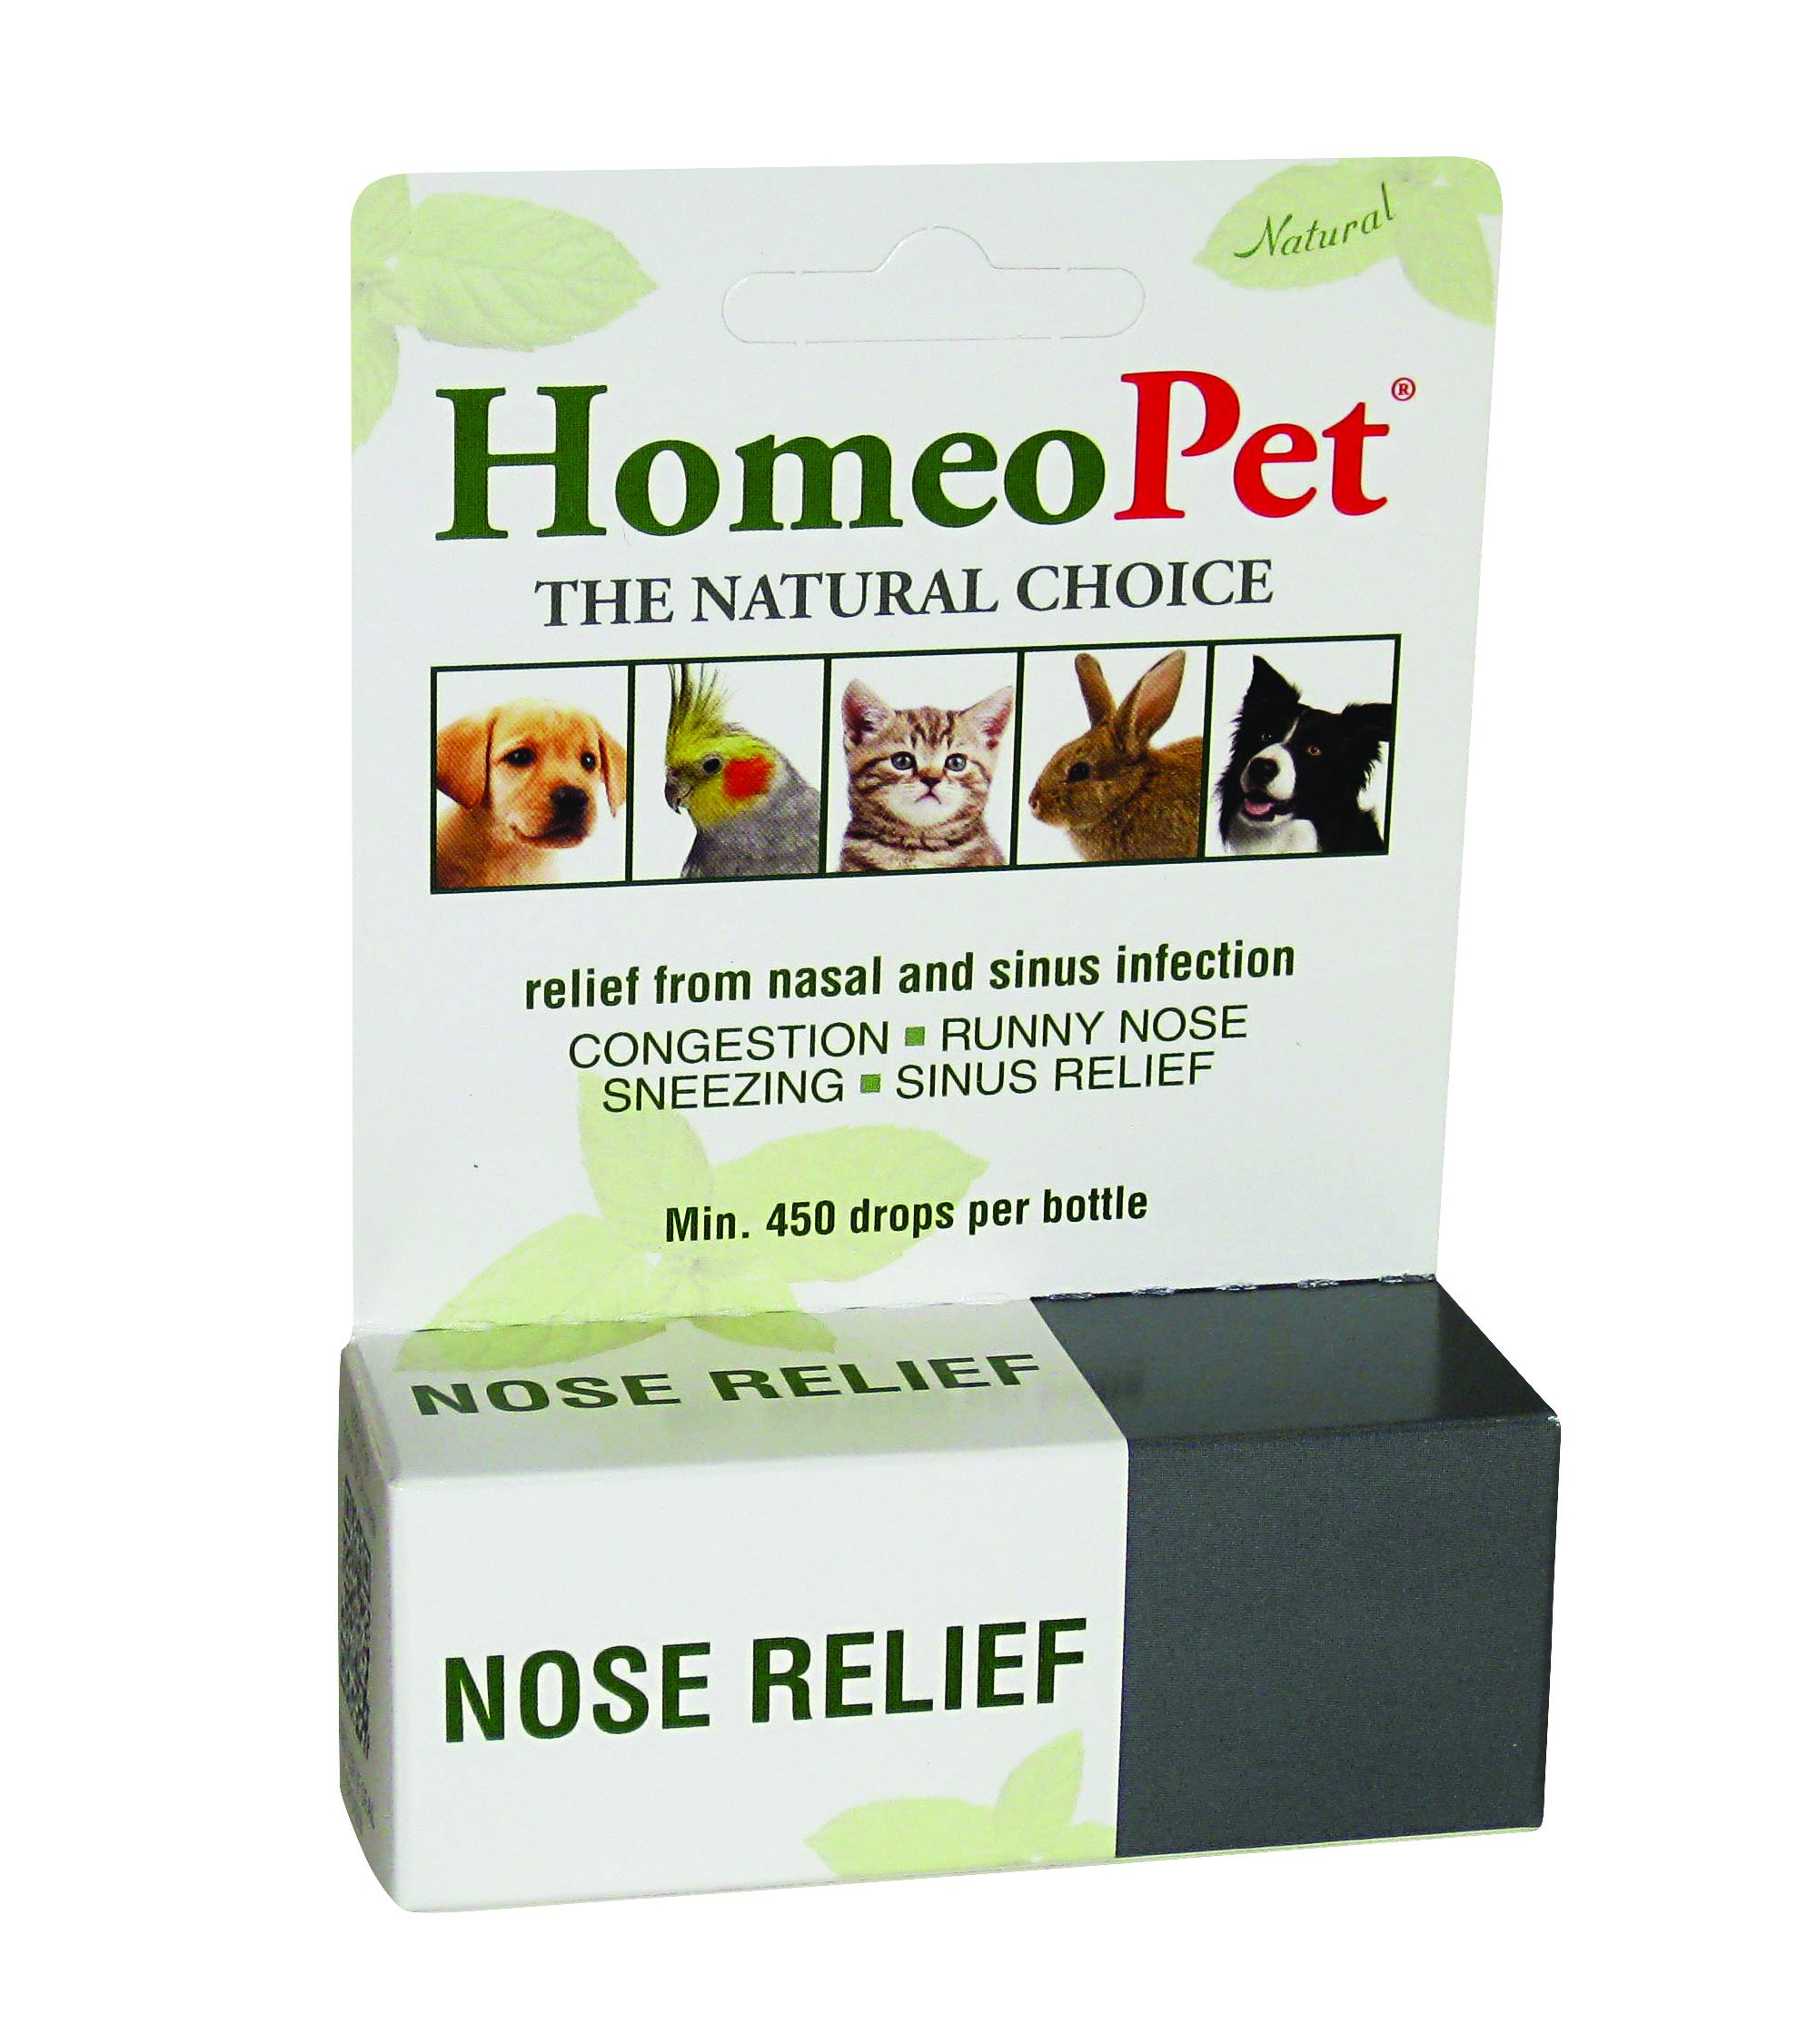 HomeoPet Nose Relief, 15 ml by HomeoPet (Image #1)